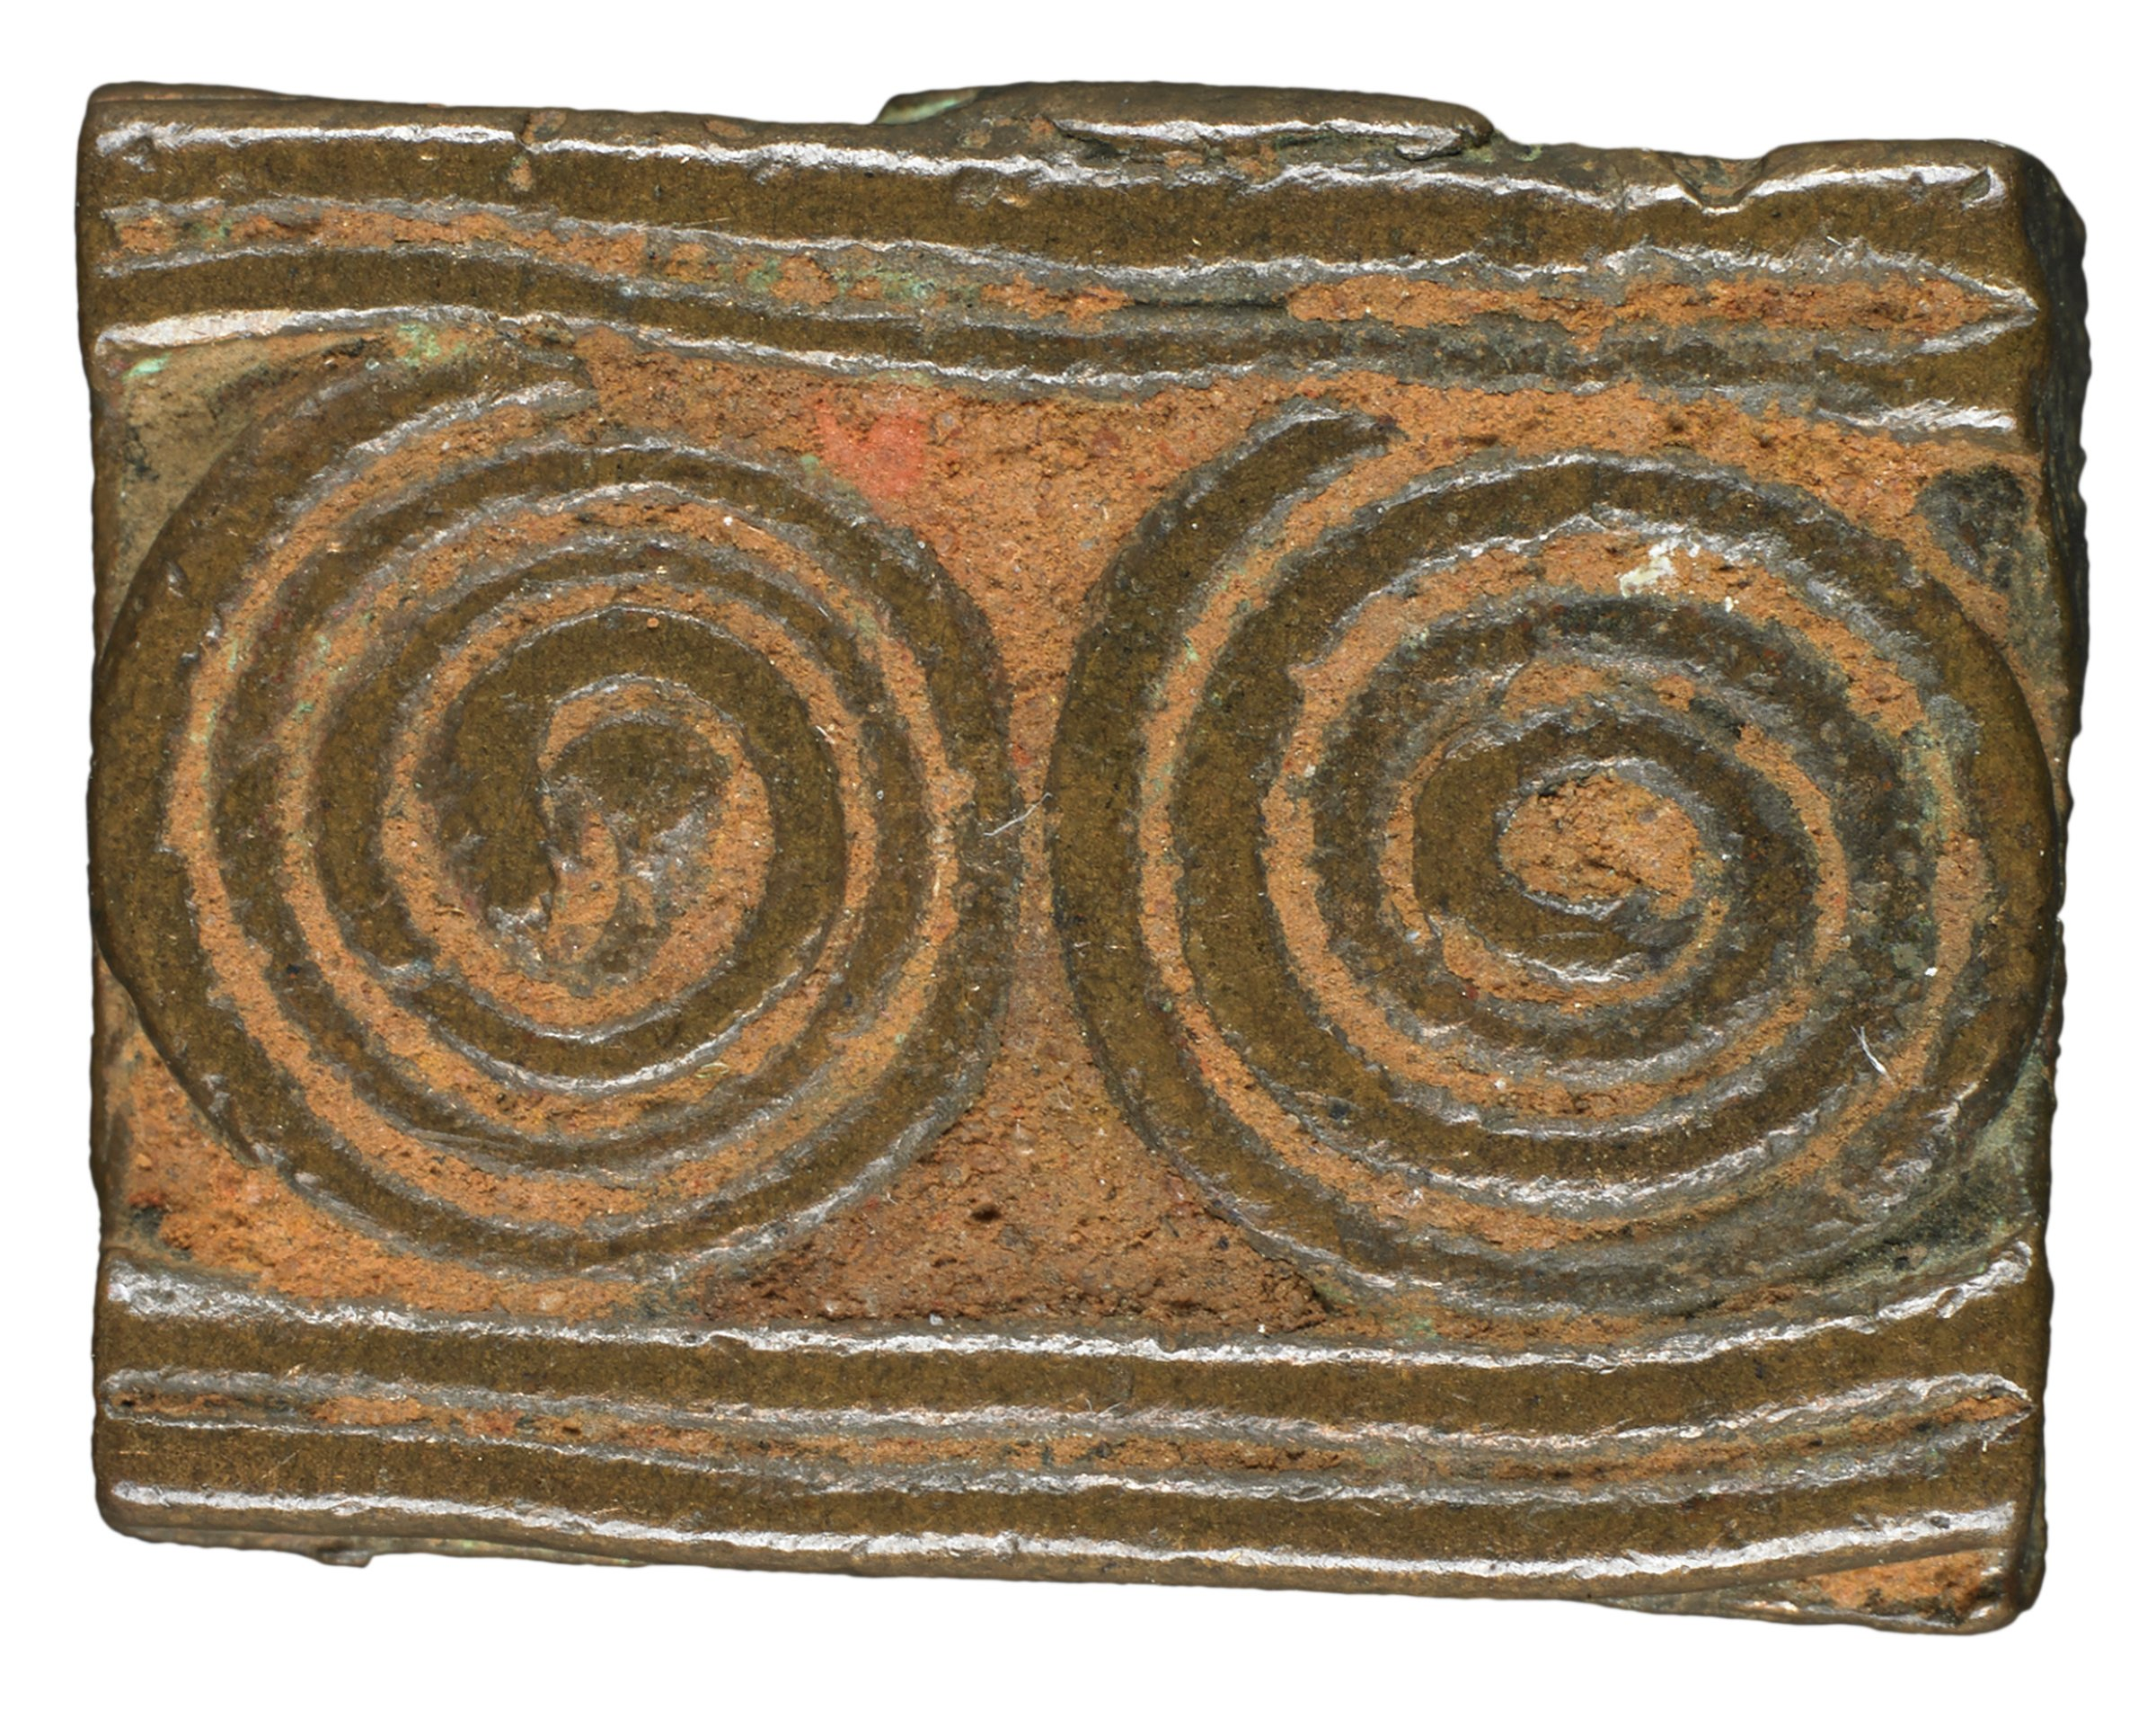 Gold Weight with Geometric Design, Akan group, Ghana or, Côte d'Ivoire, African, brass